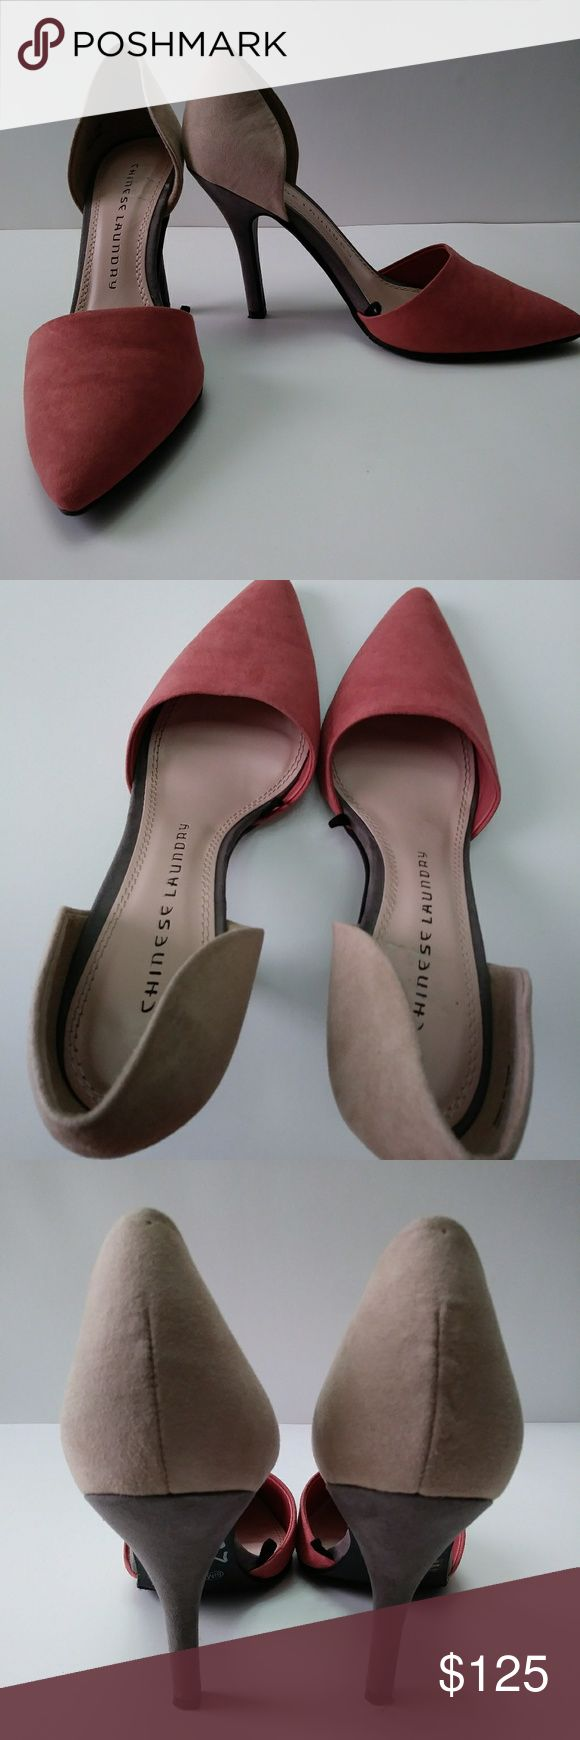 Chinese Laundry New condition never worn Chinese Laundry Shoes Heels